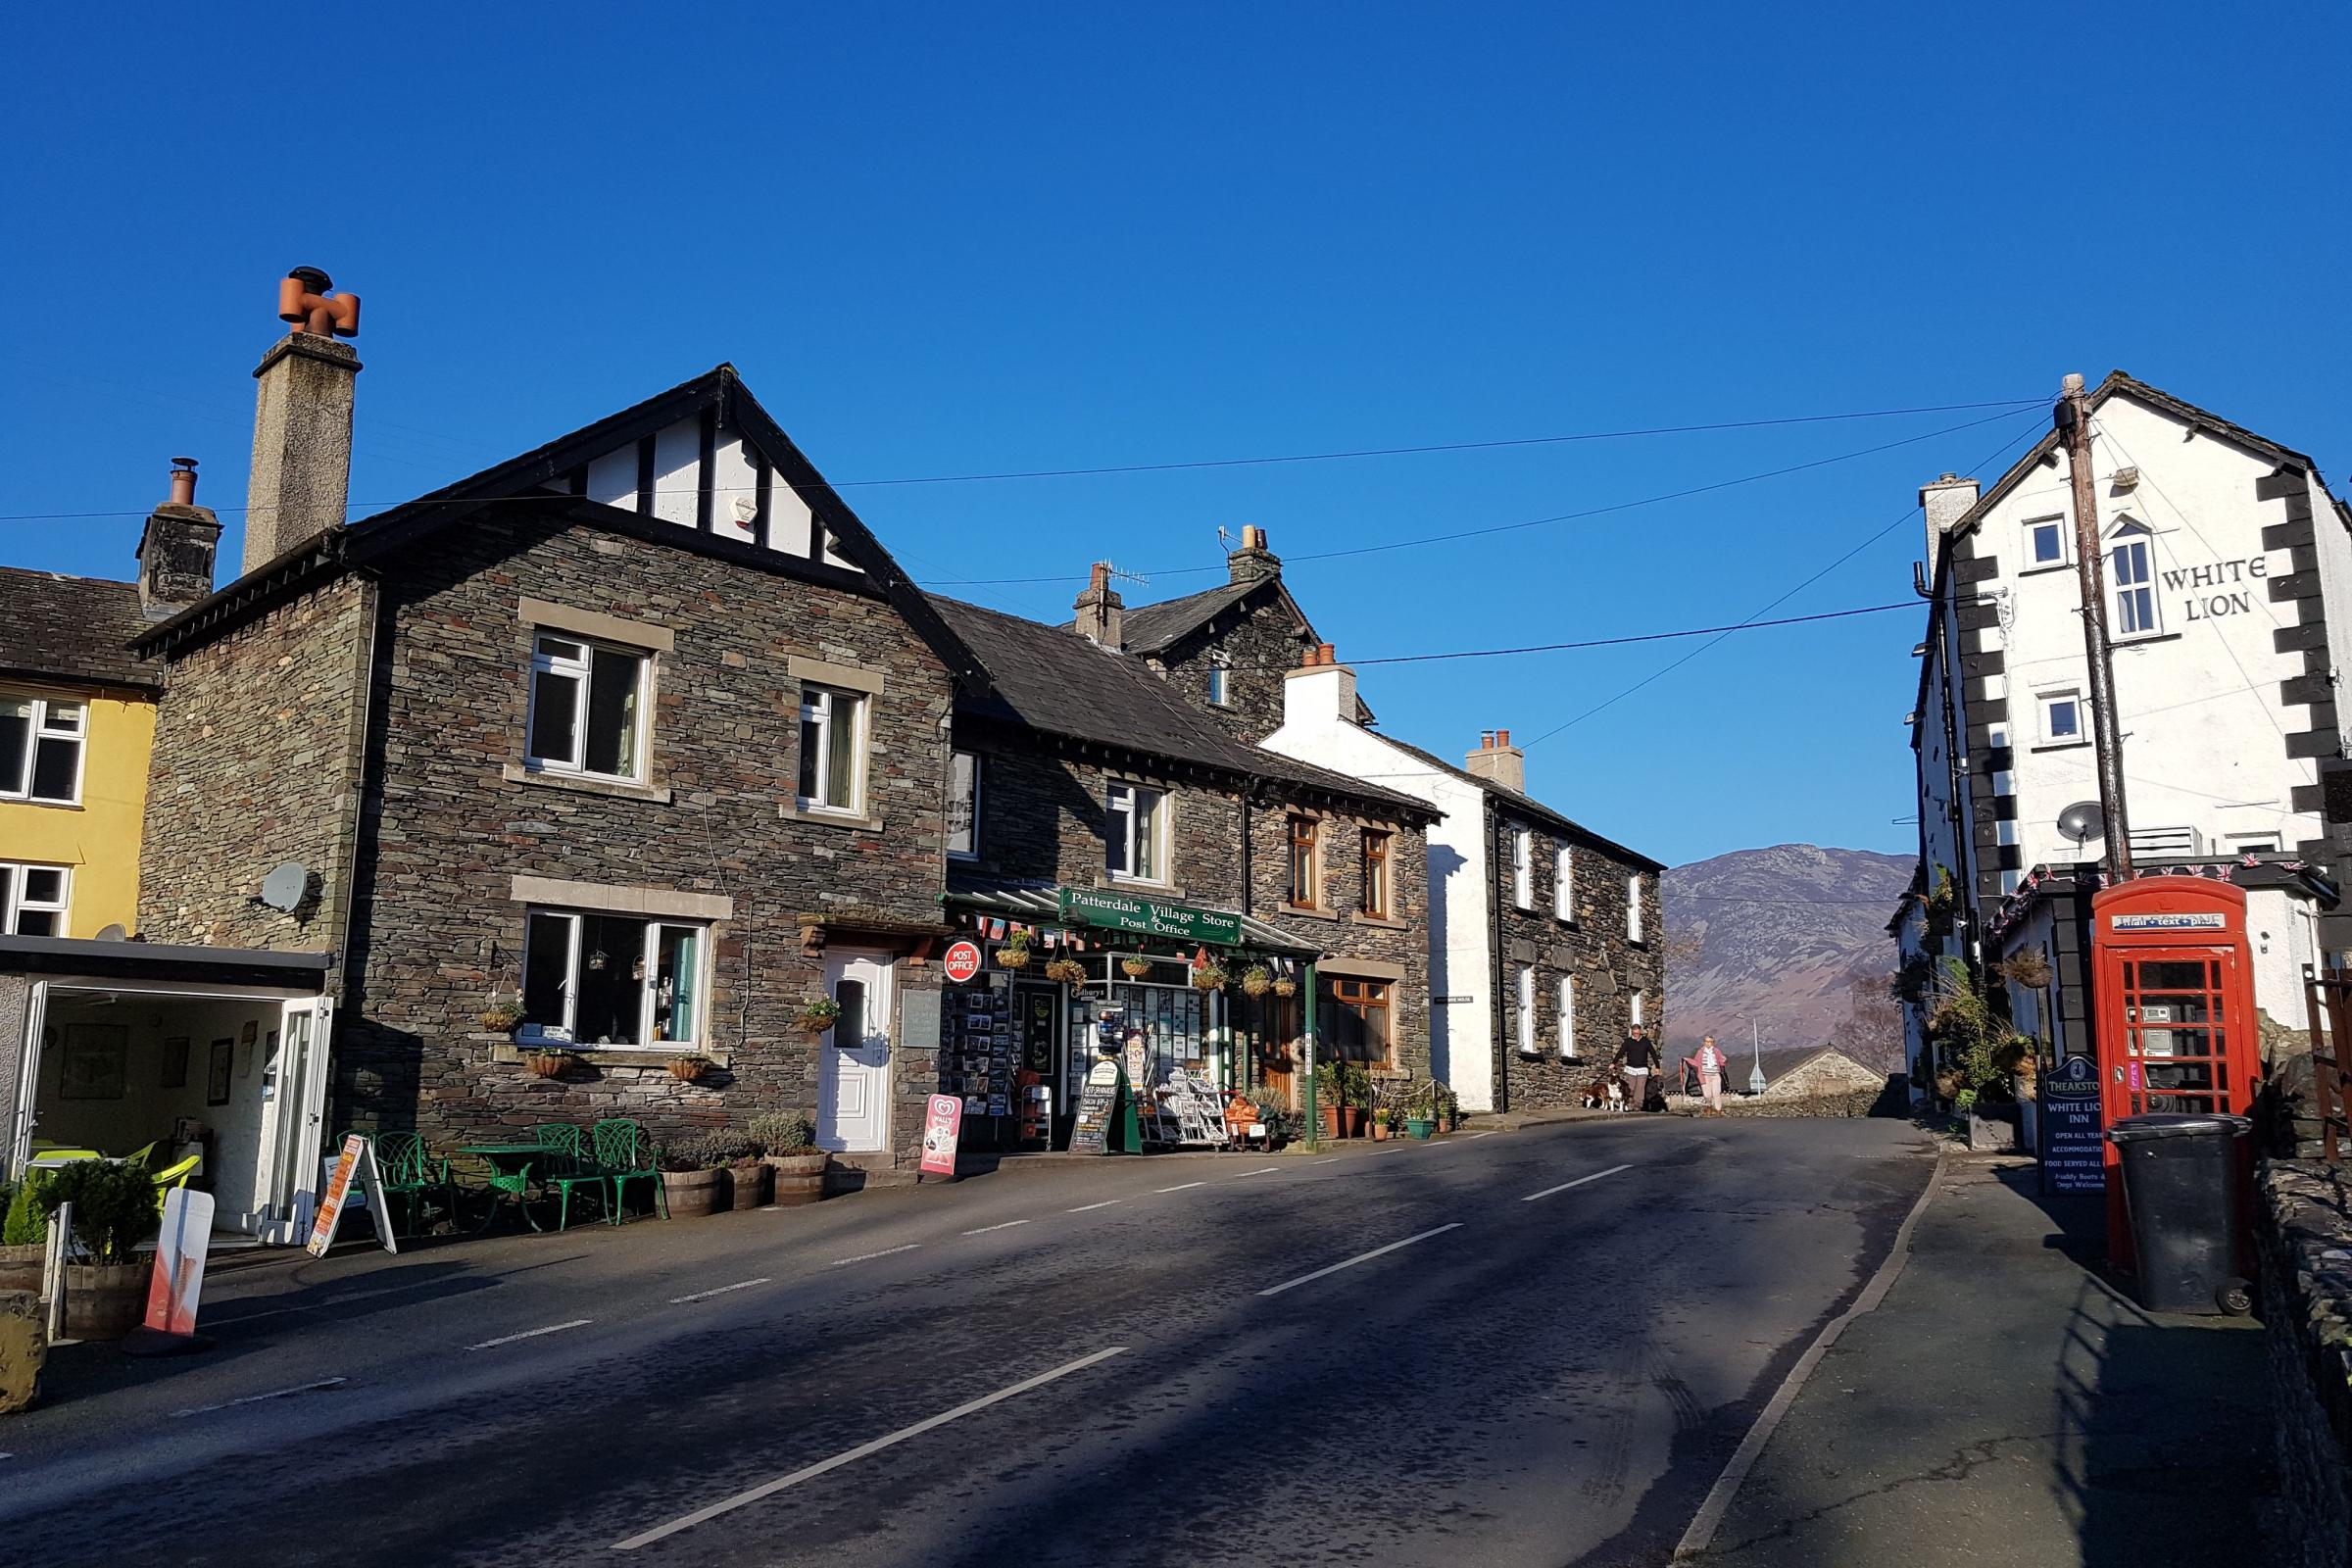 Patterdale Village Store and Post Office, which is up for sale